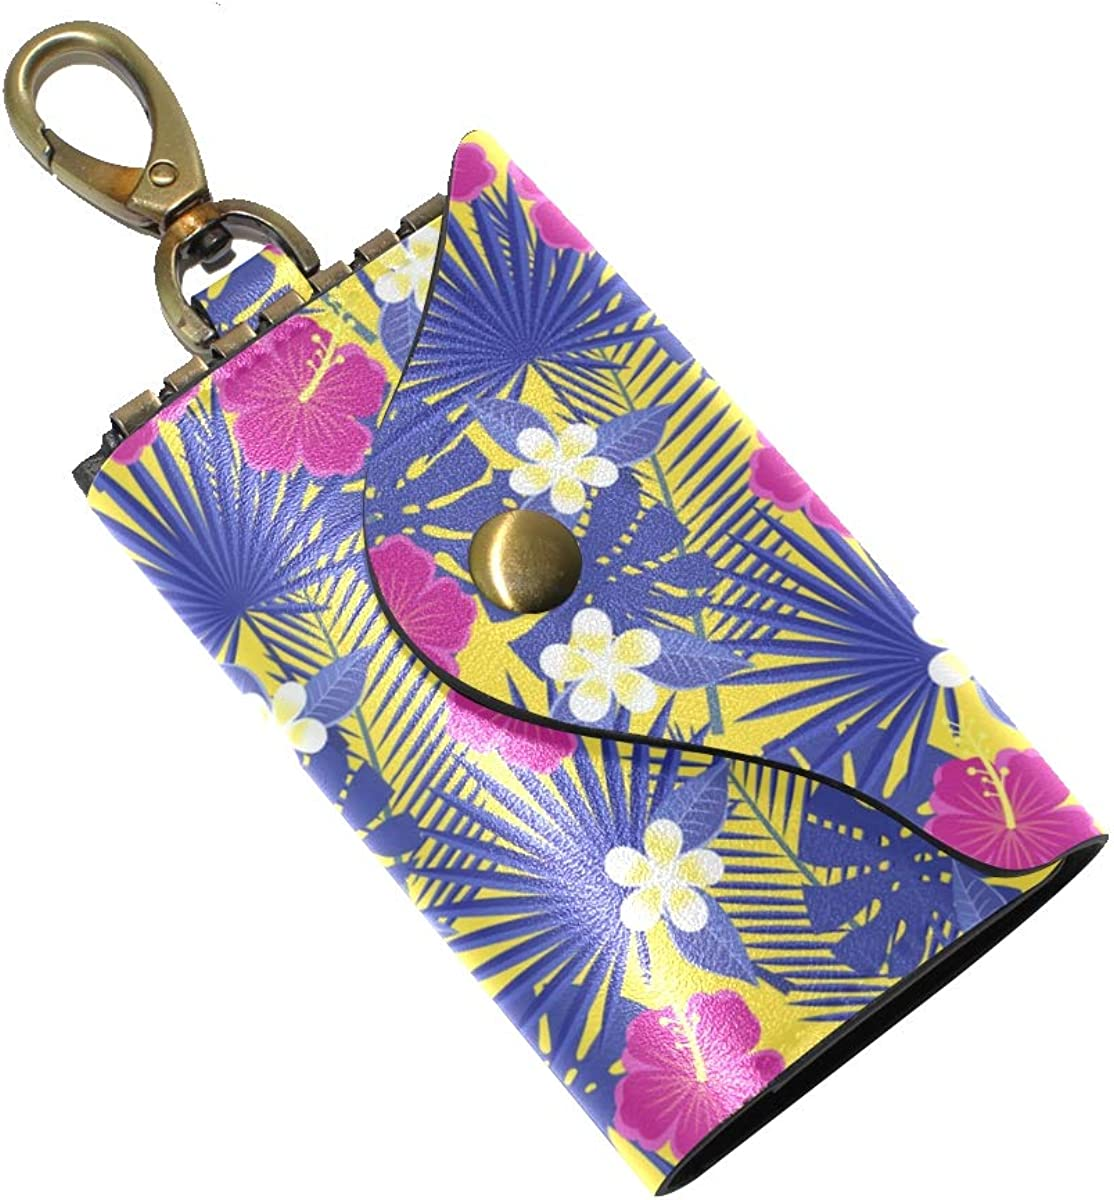 KEAKIA Tropical Leaves And Flowers Leather Key Case Wallets Tri-fold Key Holder Keychains with 6 Hooks 2 Slot Snap Closure for Men Women